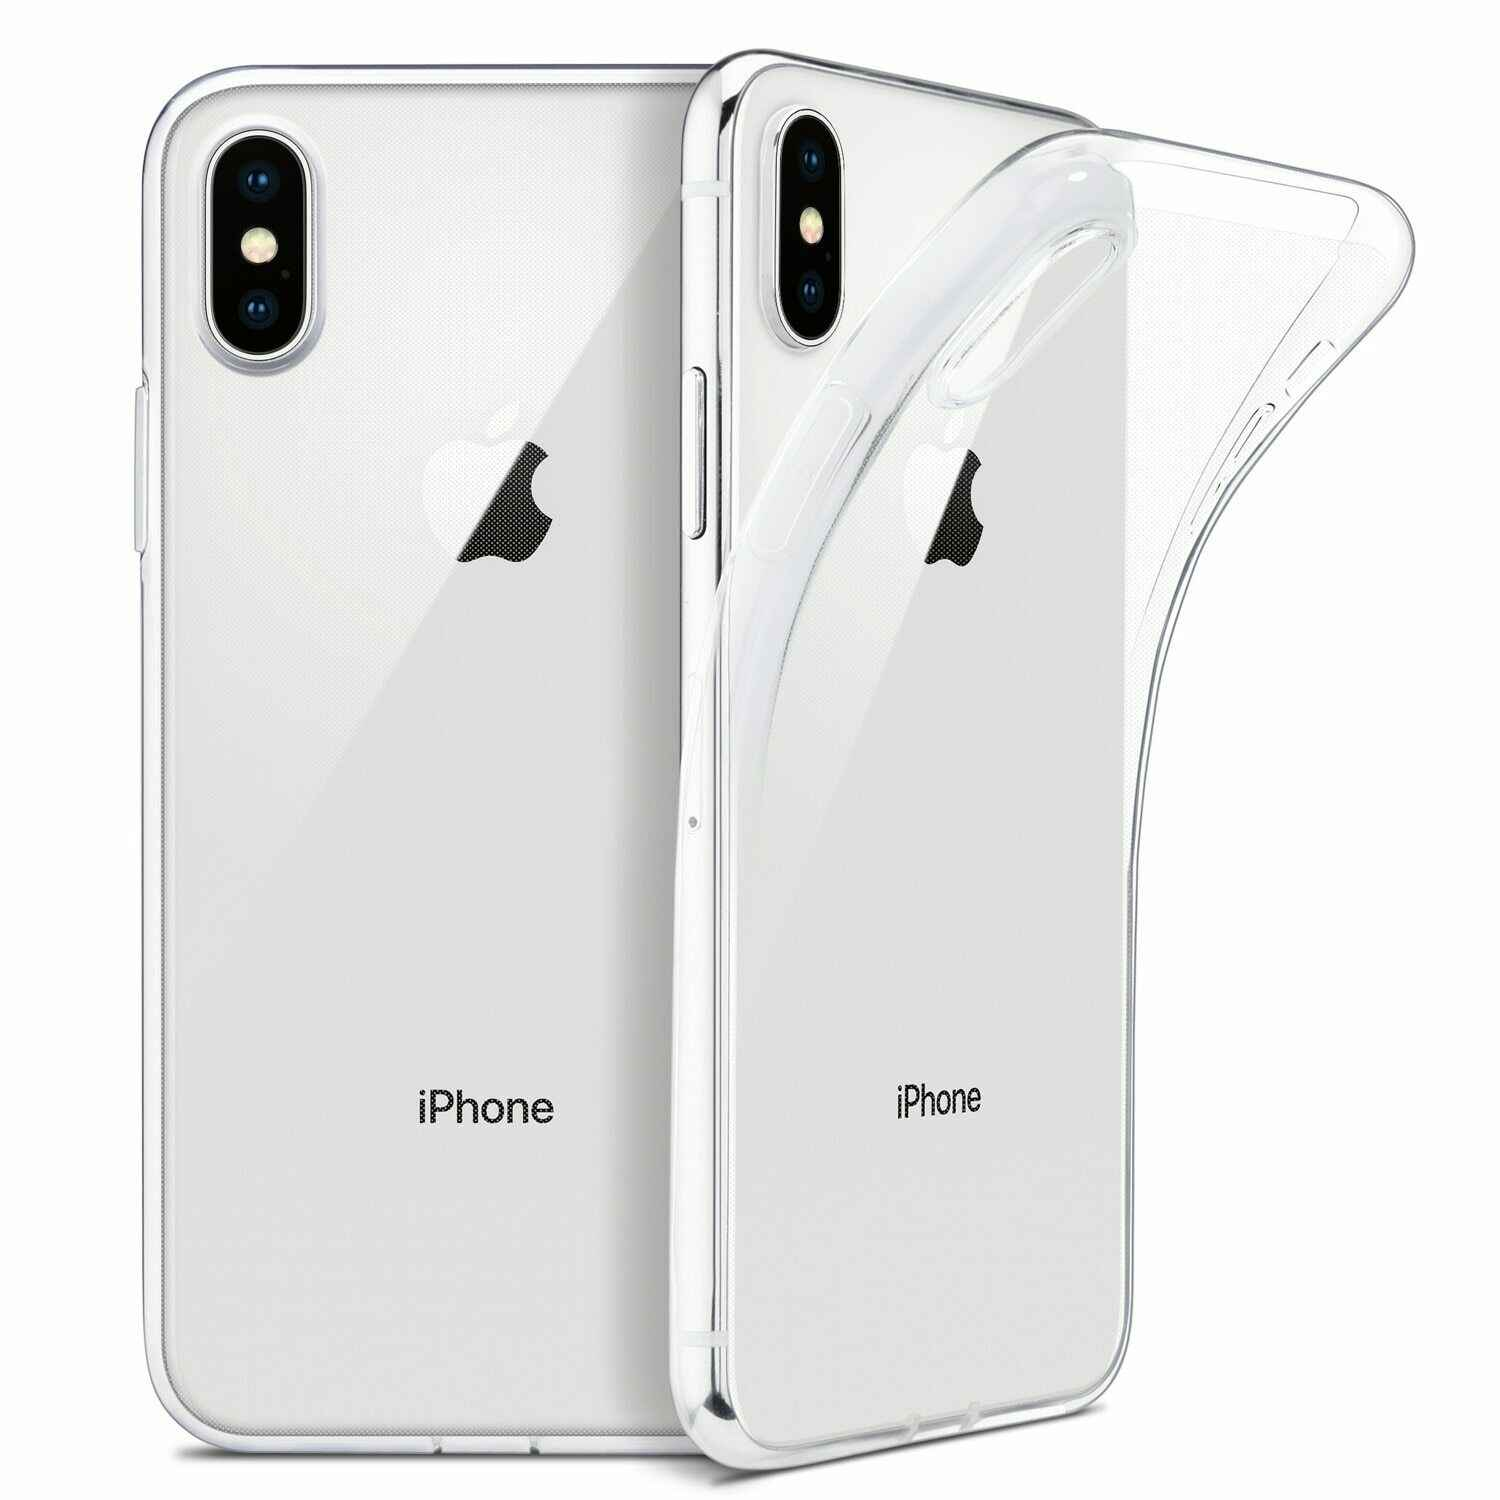 Transparant Clear Soft Silicone Case Voor iphone 11 PRO MAX 7 7 plus 5 5s 5se 6 6s Case cover Back Cover Voor iphone x xs max xr